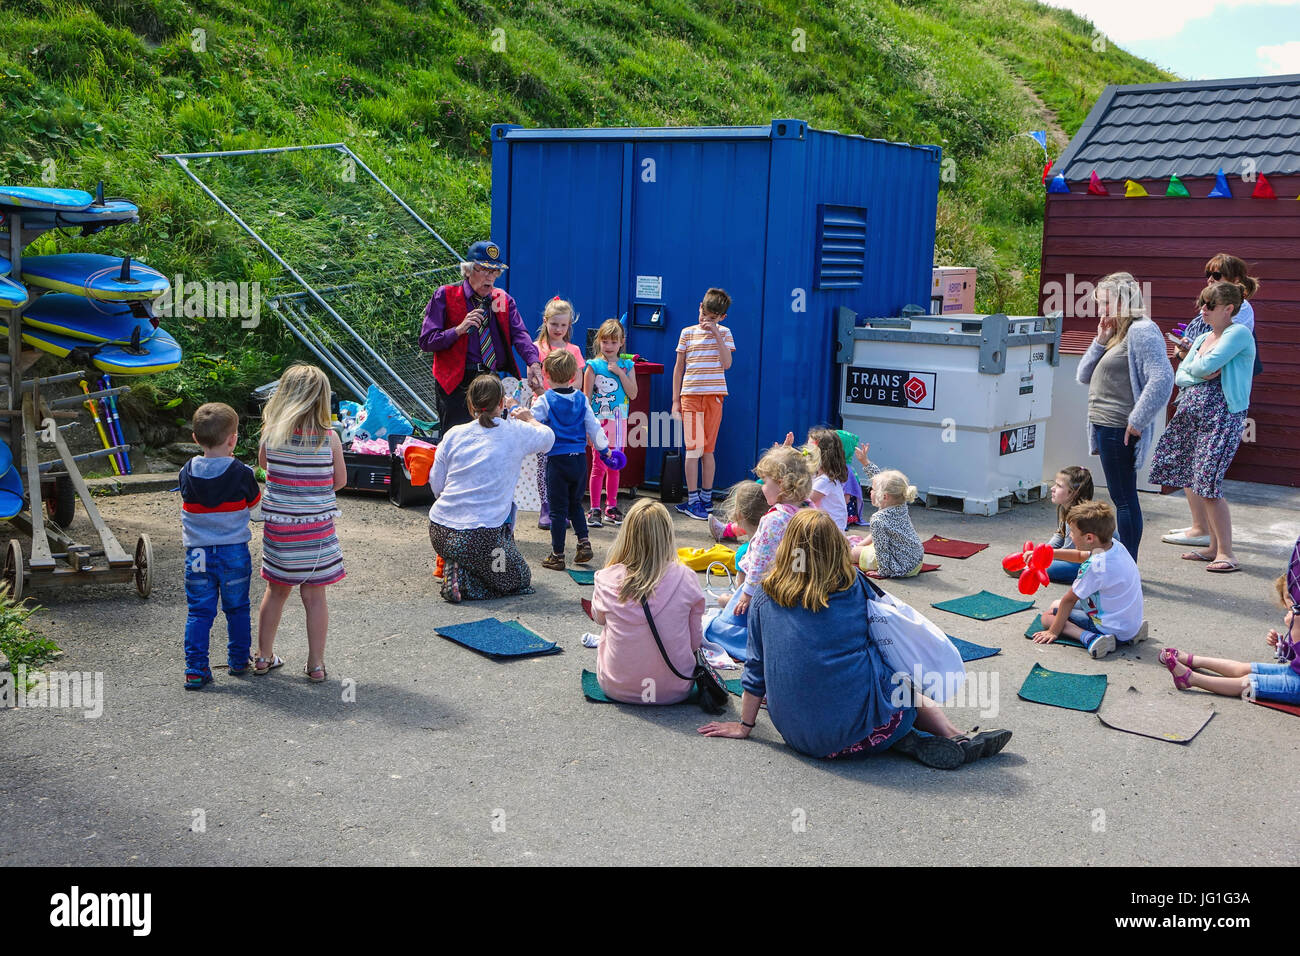 Children's entertainer, seaside holiday, Saltburn by the Sea, North Yorkshire - Stock Image